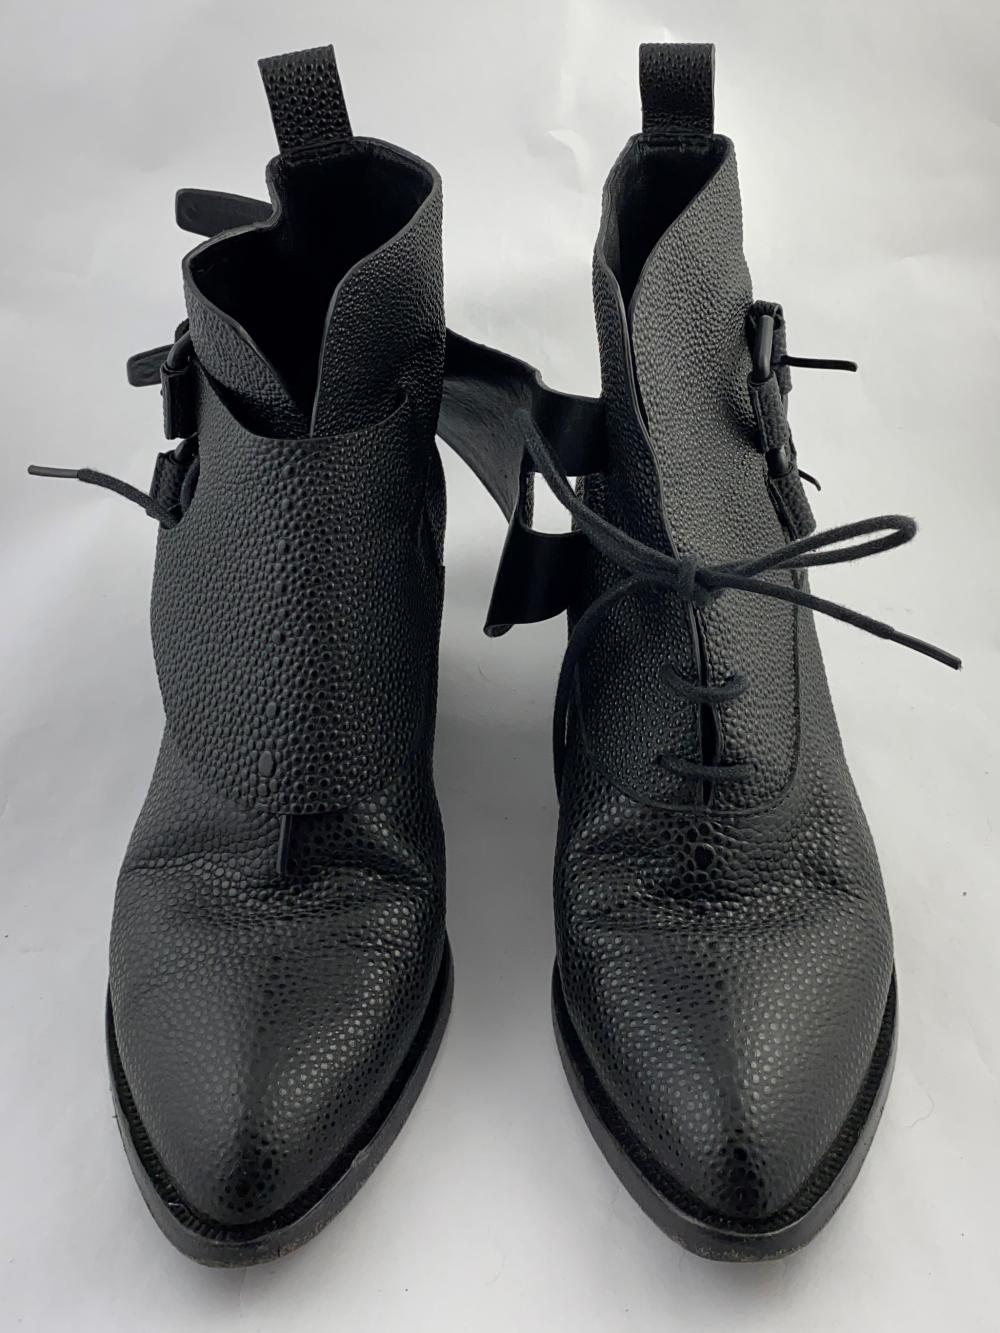 Alexander Wang: Black Pebbled Leather Ankle Boots, Buckled Front Lace Cover